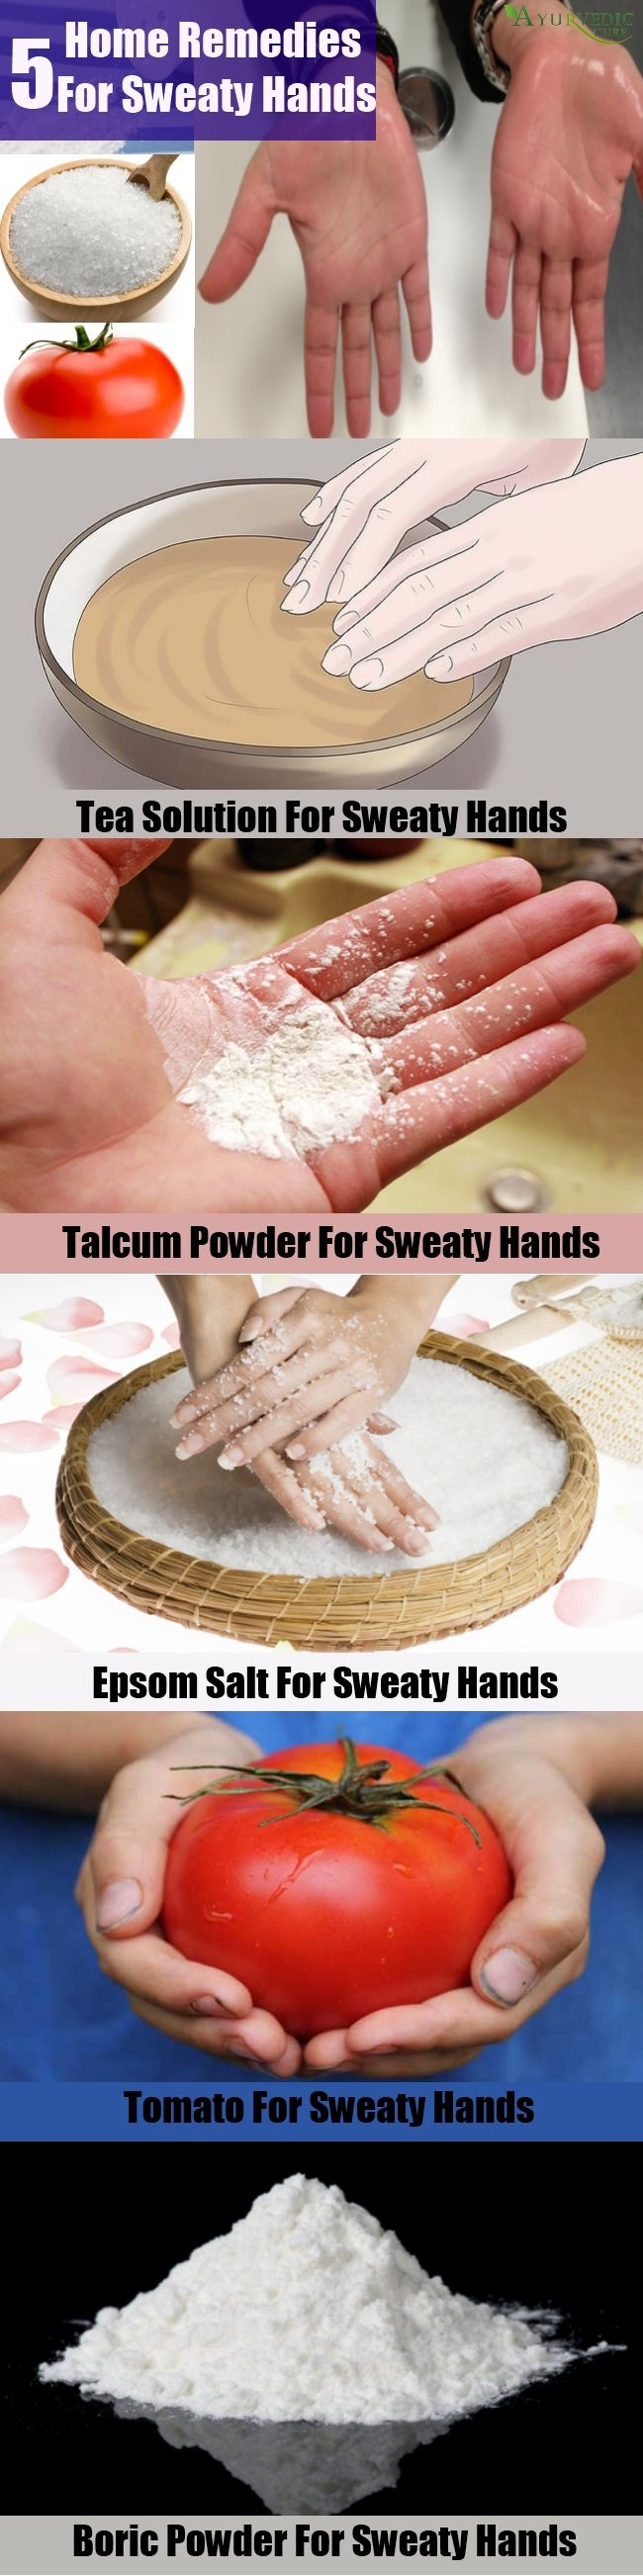 5 Best Home Remedies For Sweaty Hands - don't judge me...